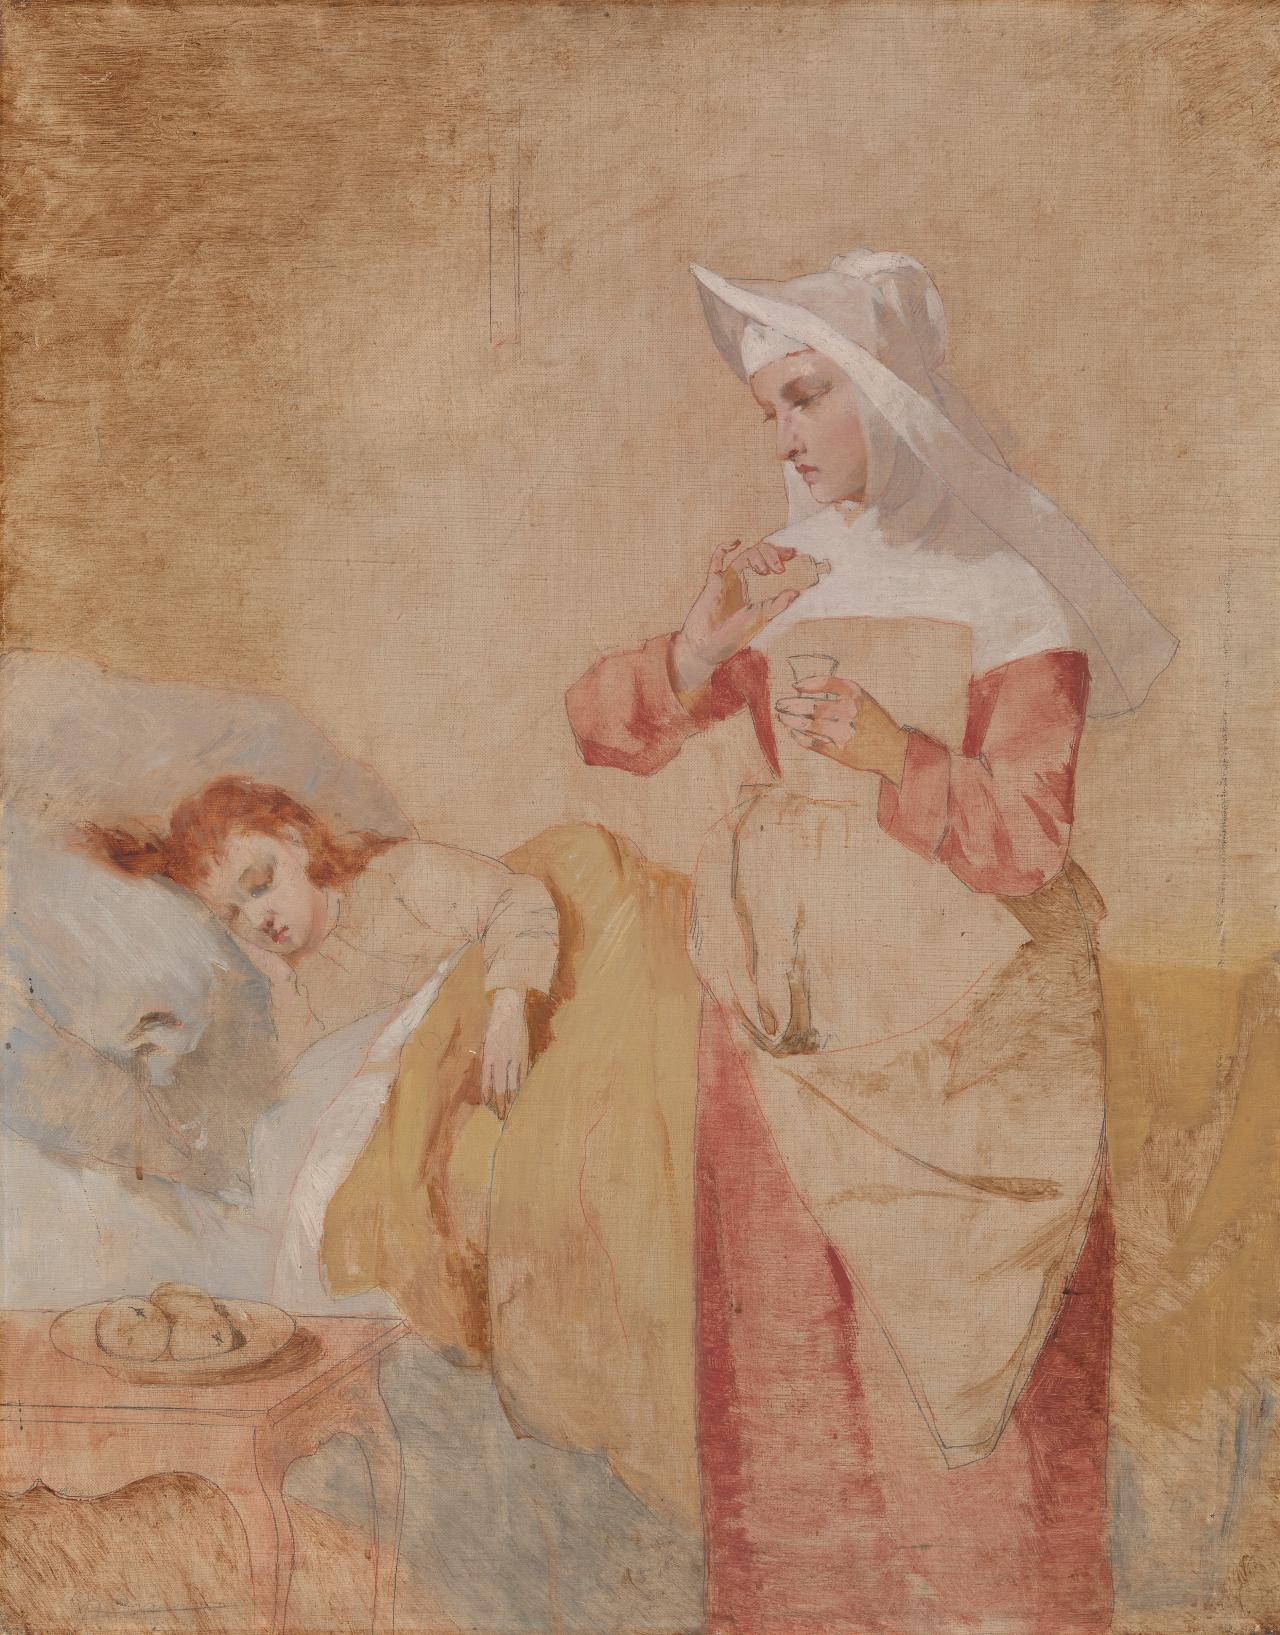 Study for picture: Nun and sick child